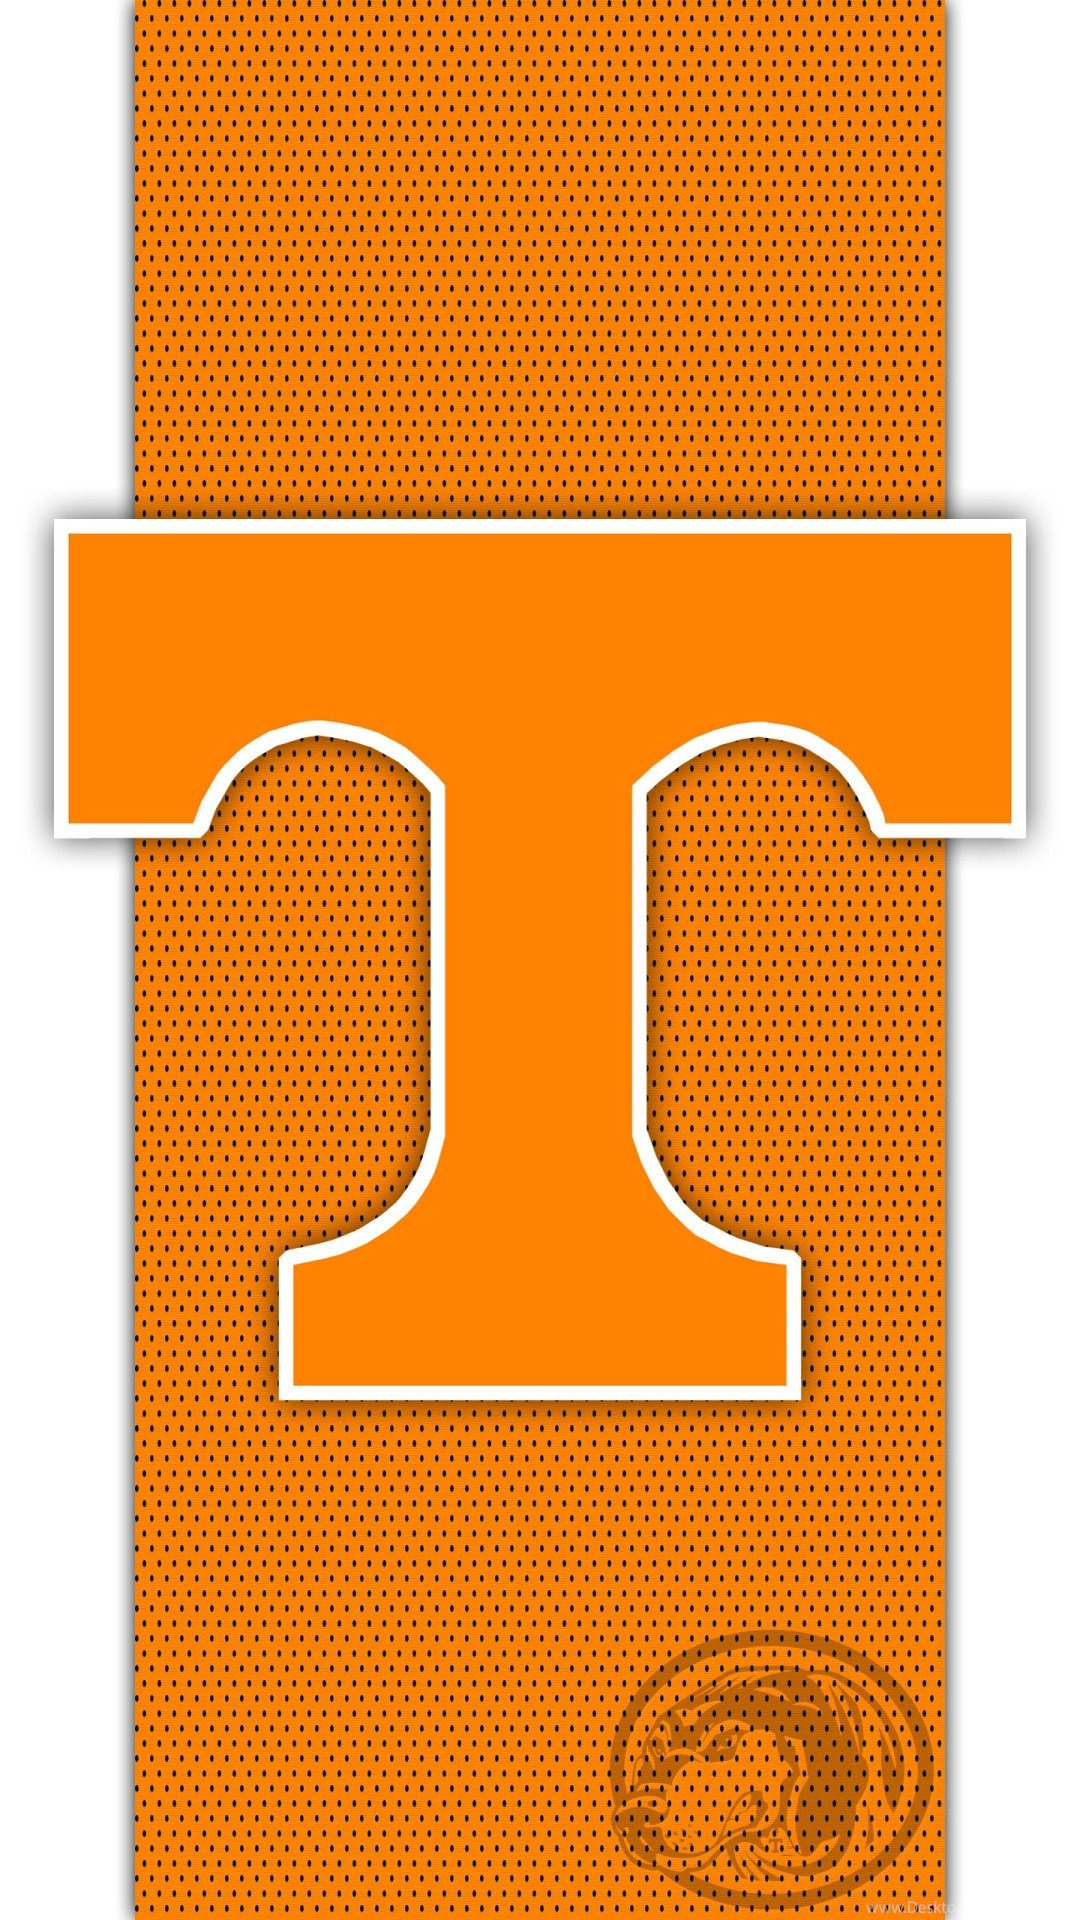 Tennessee Volunteers A Cell Phone Wallpapers Based Desktop Background